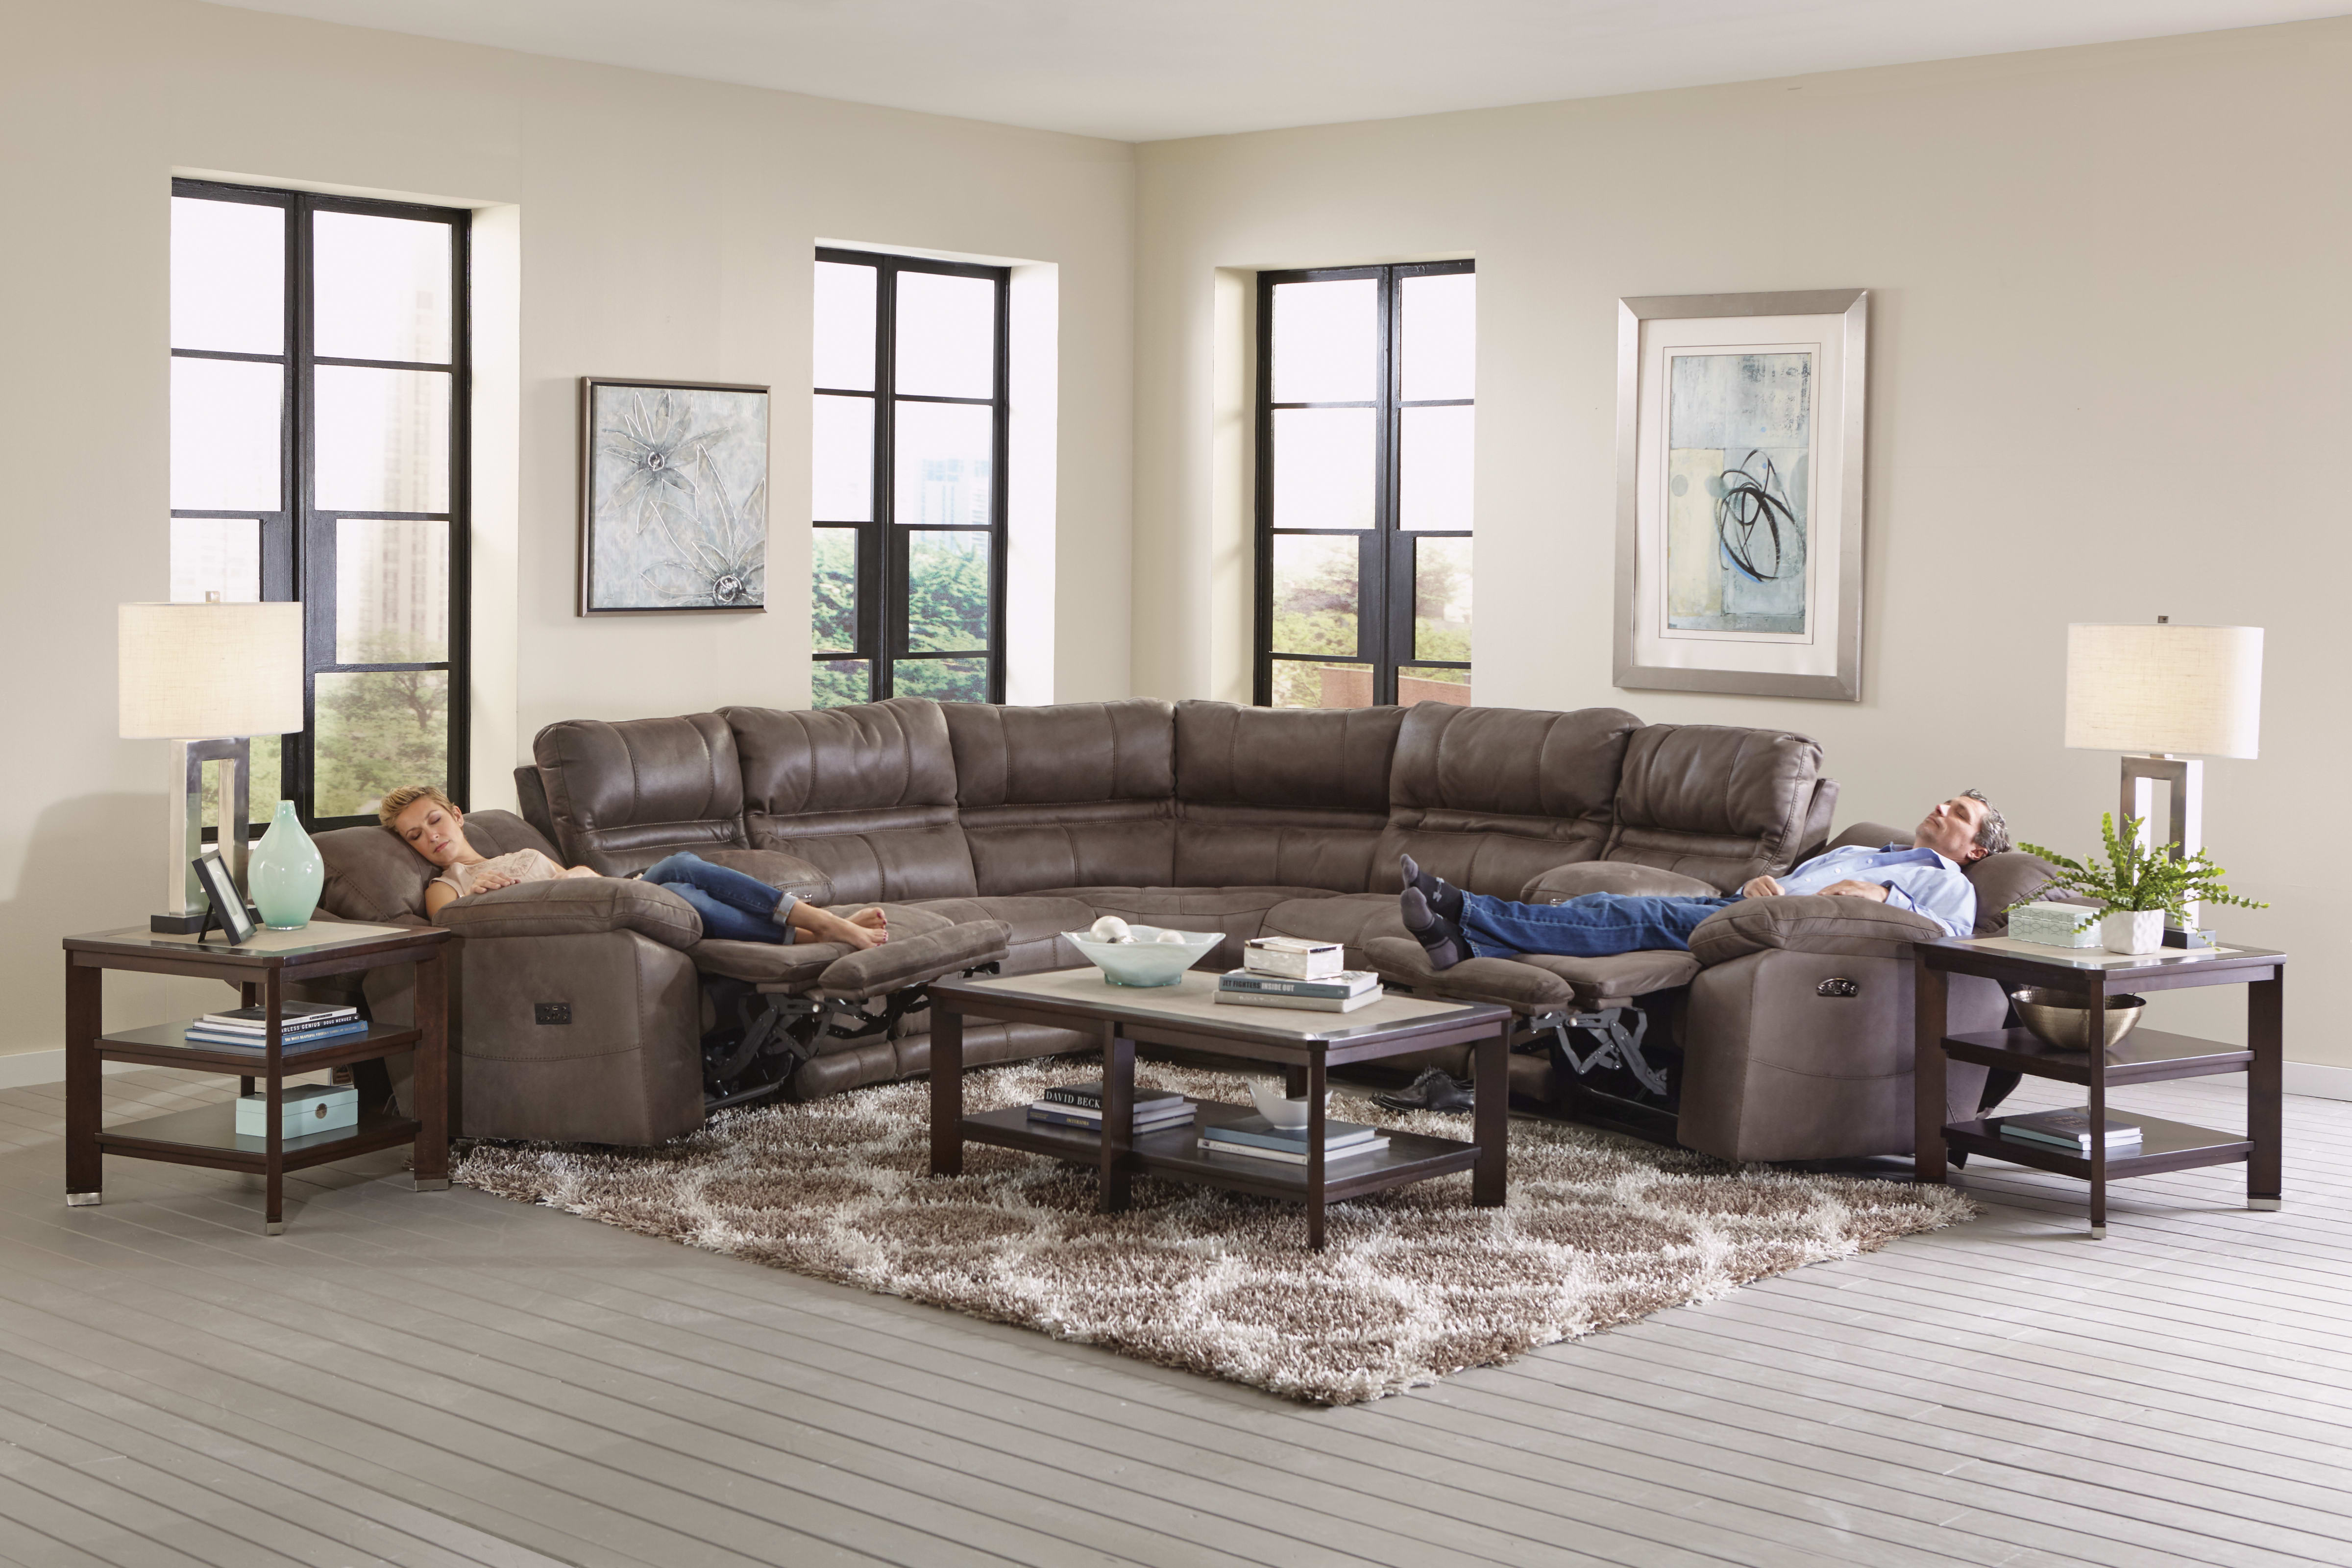 Catnapper Braxton Charcoal 7-Piece Sectional Sofa & Reviews ...